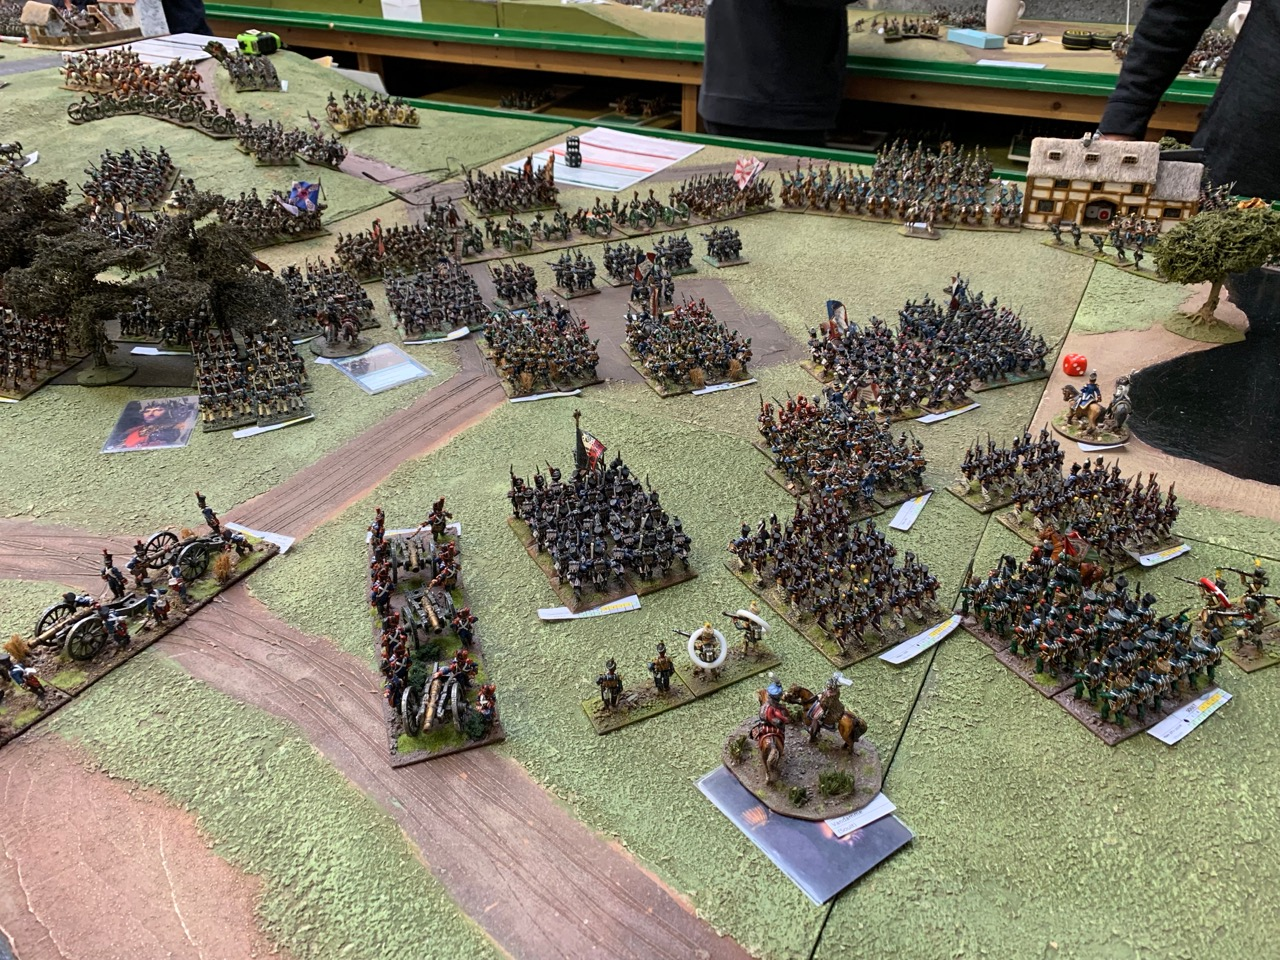 Soult advances on the heights after securing the French right